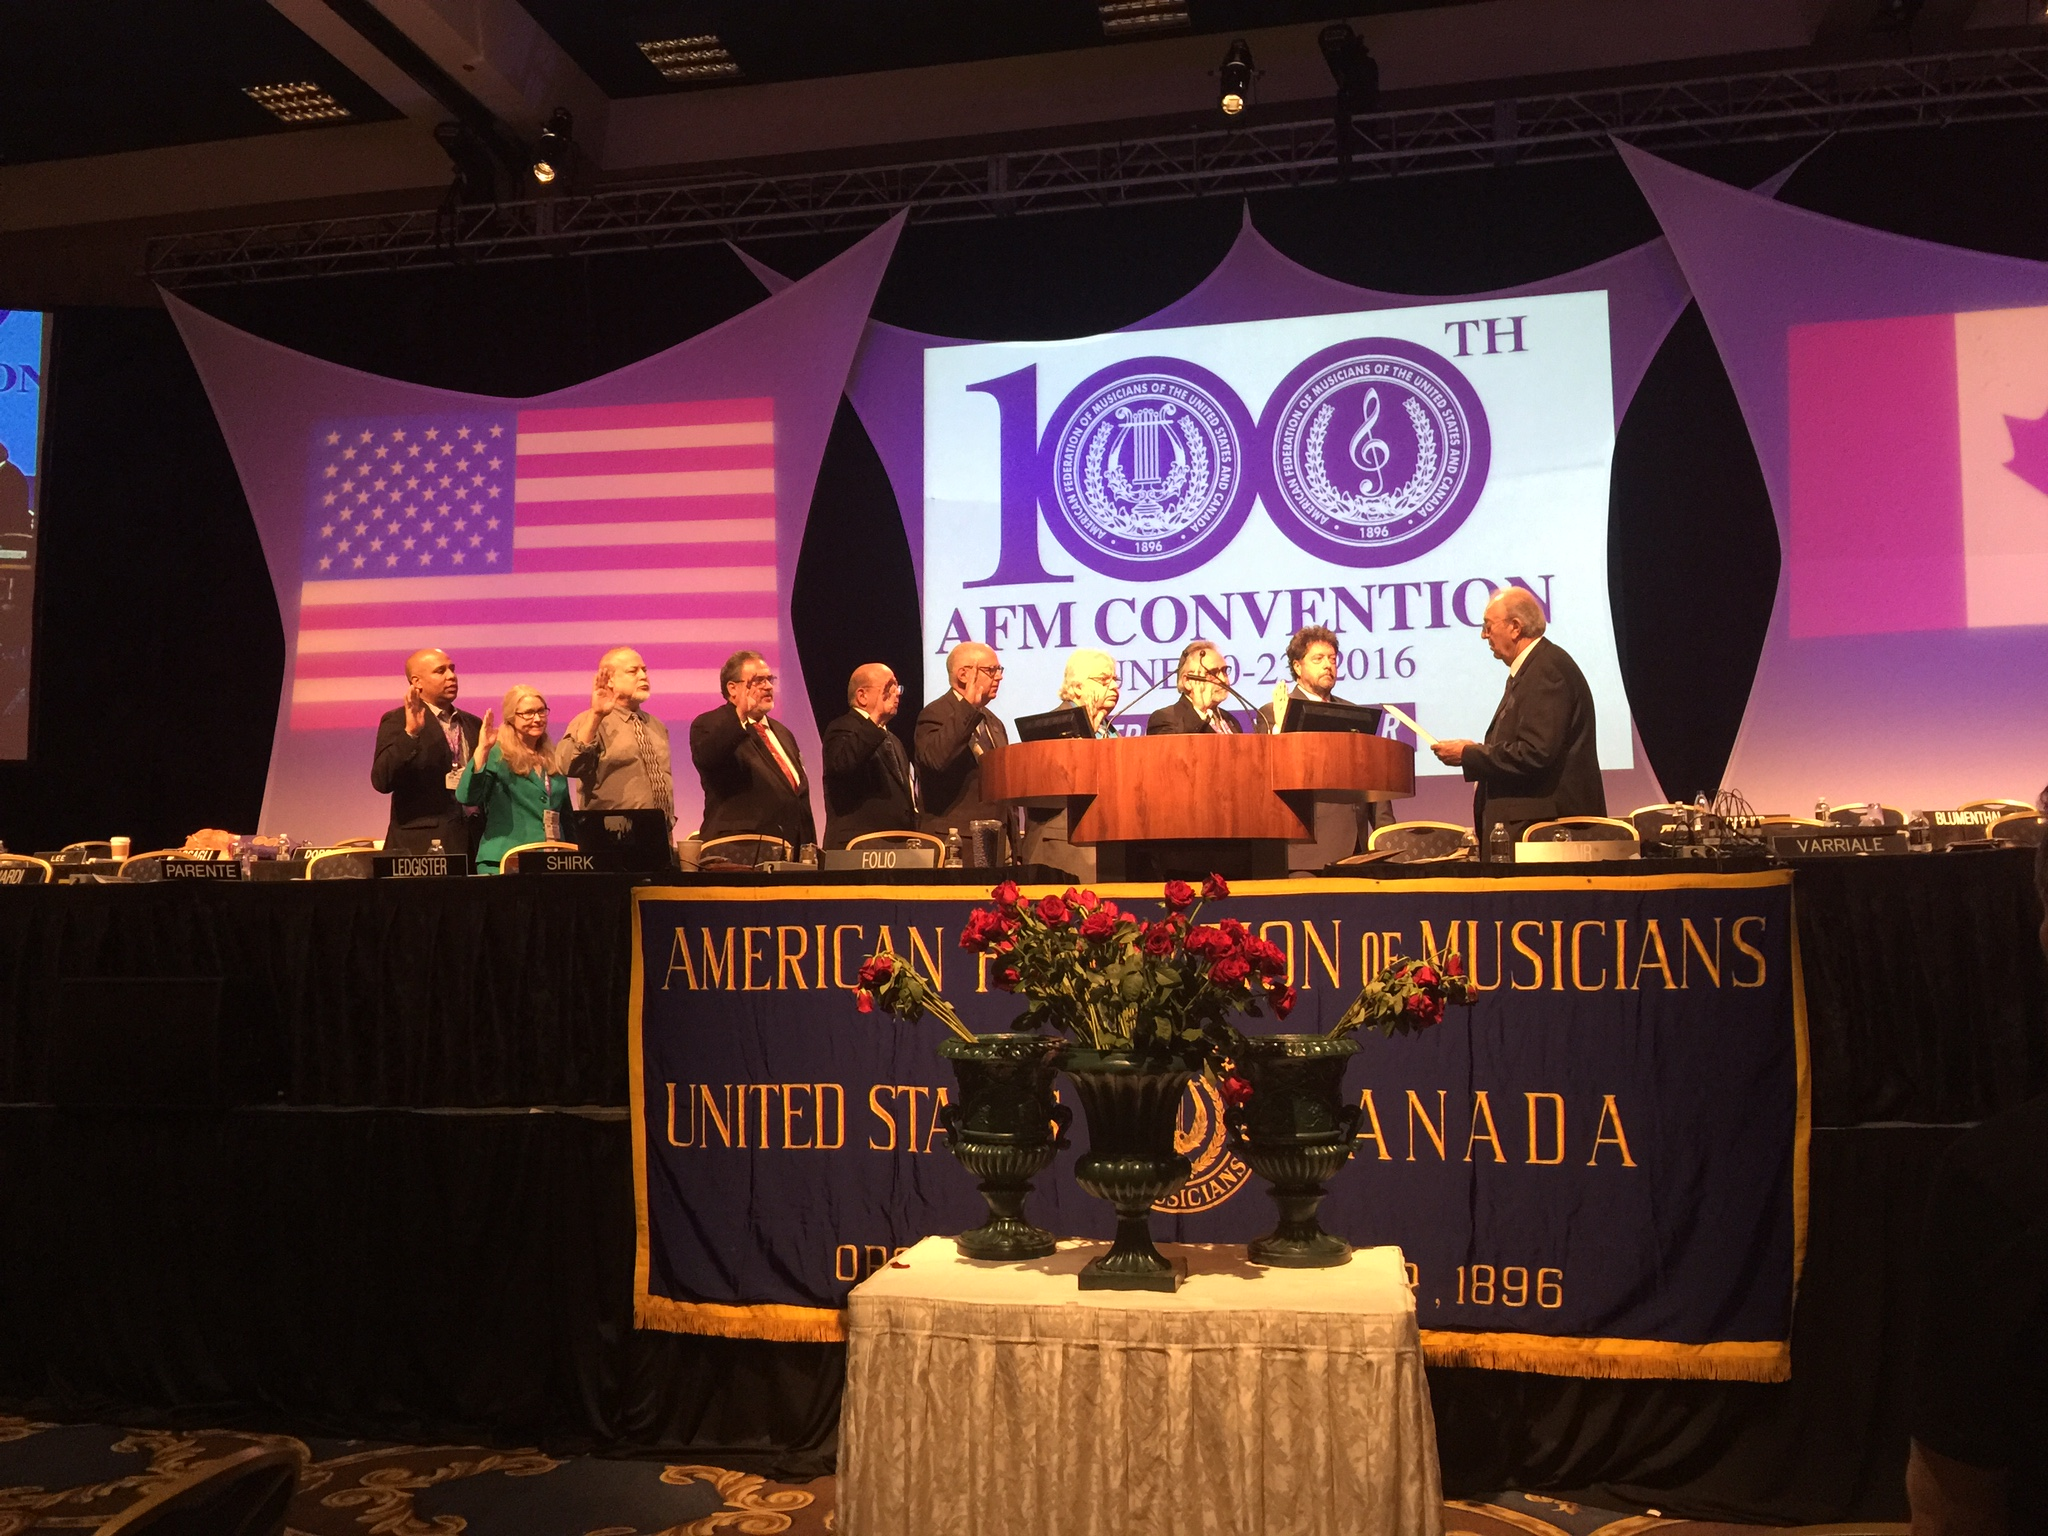 The new AFM International Executive Board members - including our own President John Acosta - being sworn in at the 100th Convention. (Photo: Bonnie Janofsky)